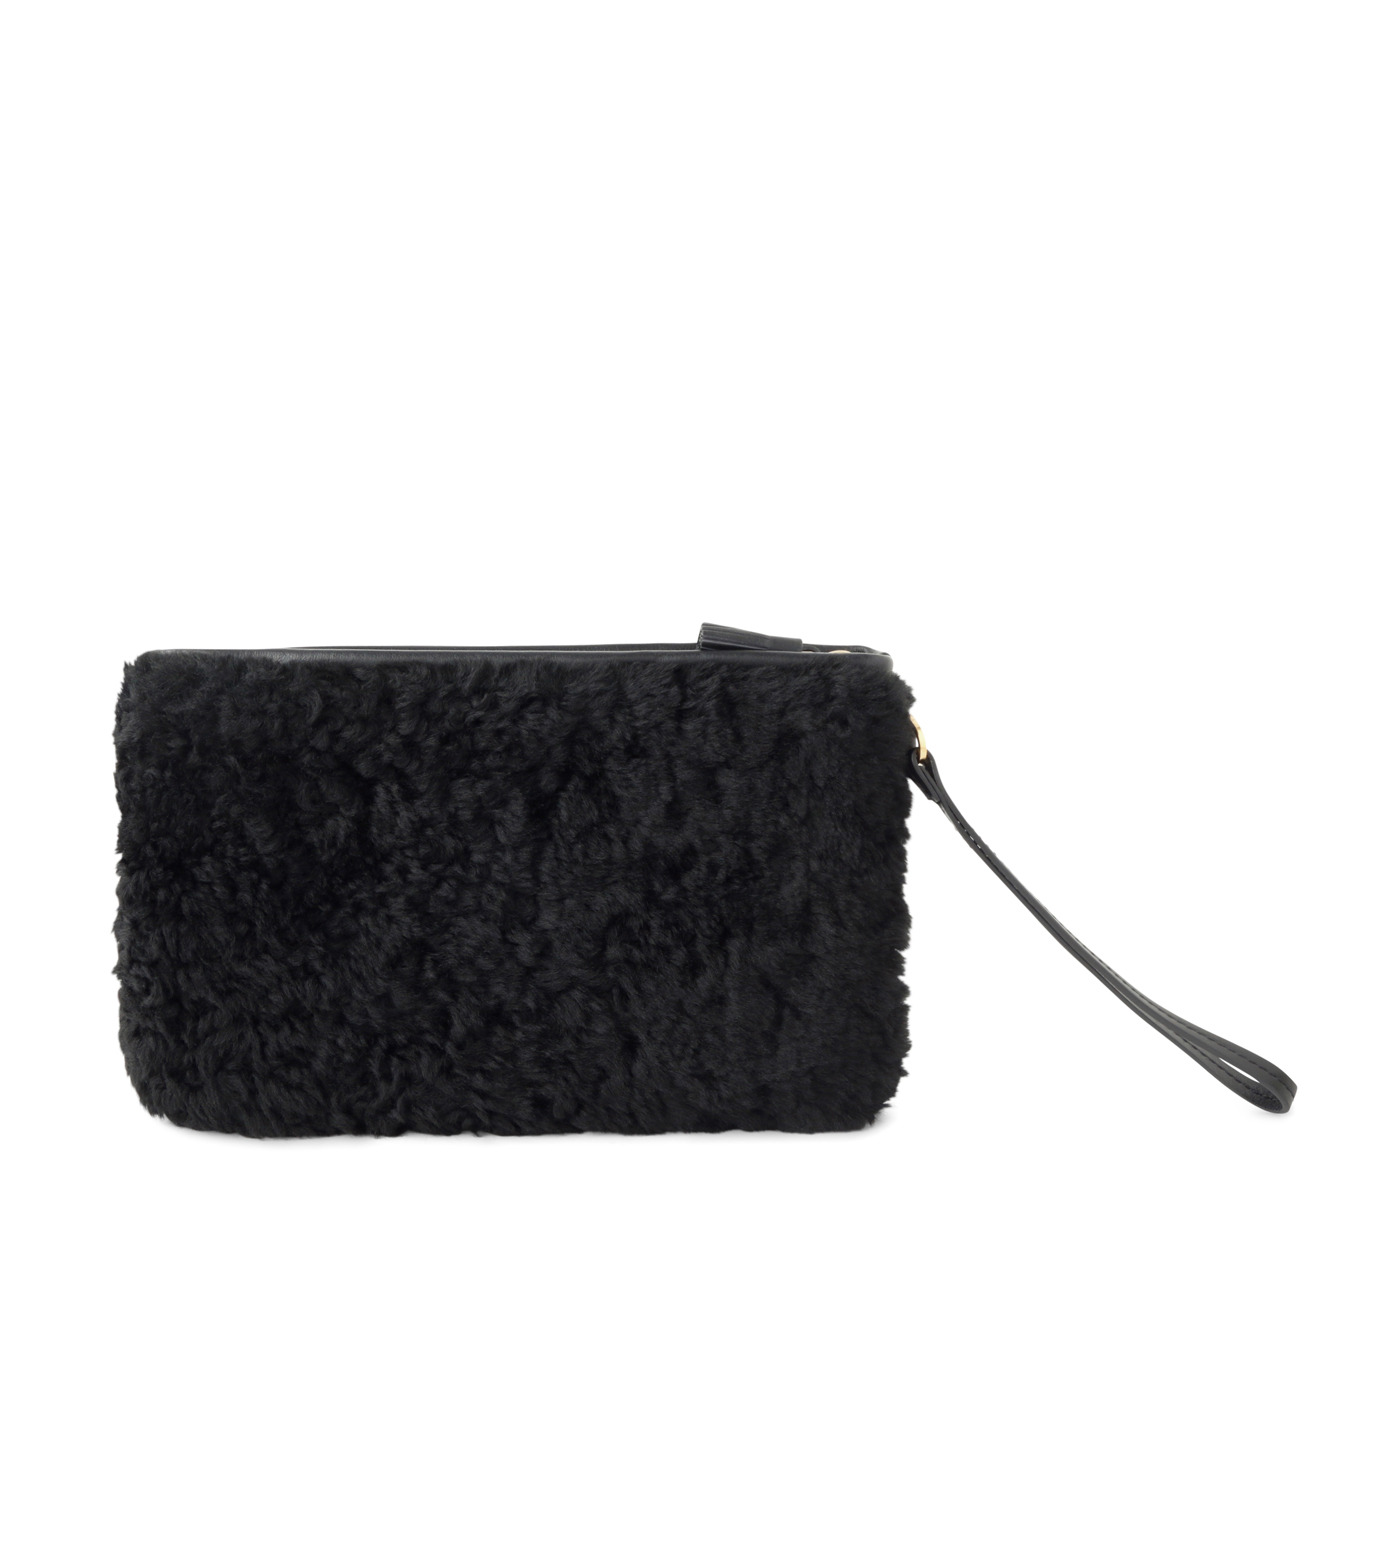 Anya Hindmarch(アニヤハインドマーチ)のZip Top Pouch Ghost Shearling-BLACK-933841-13 拡大詳細画像3